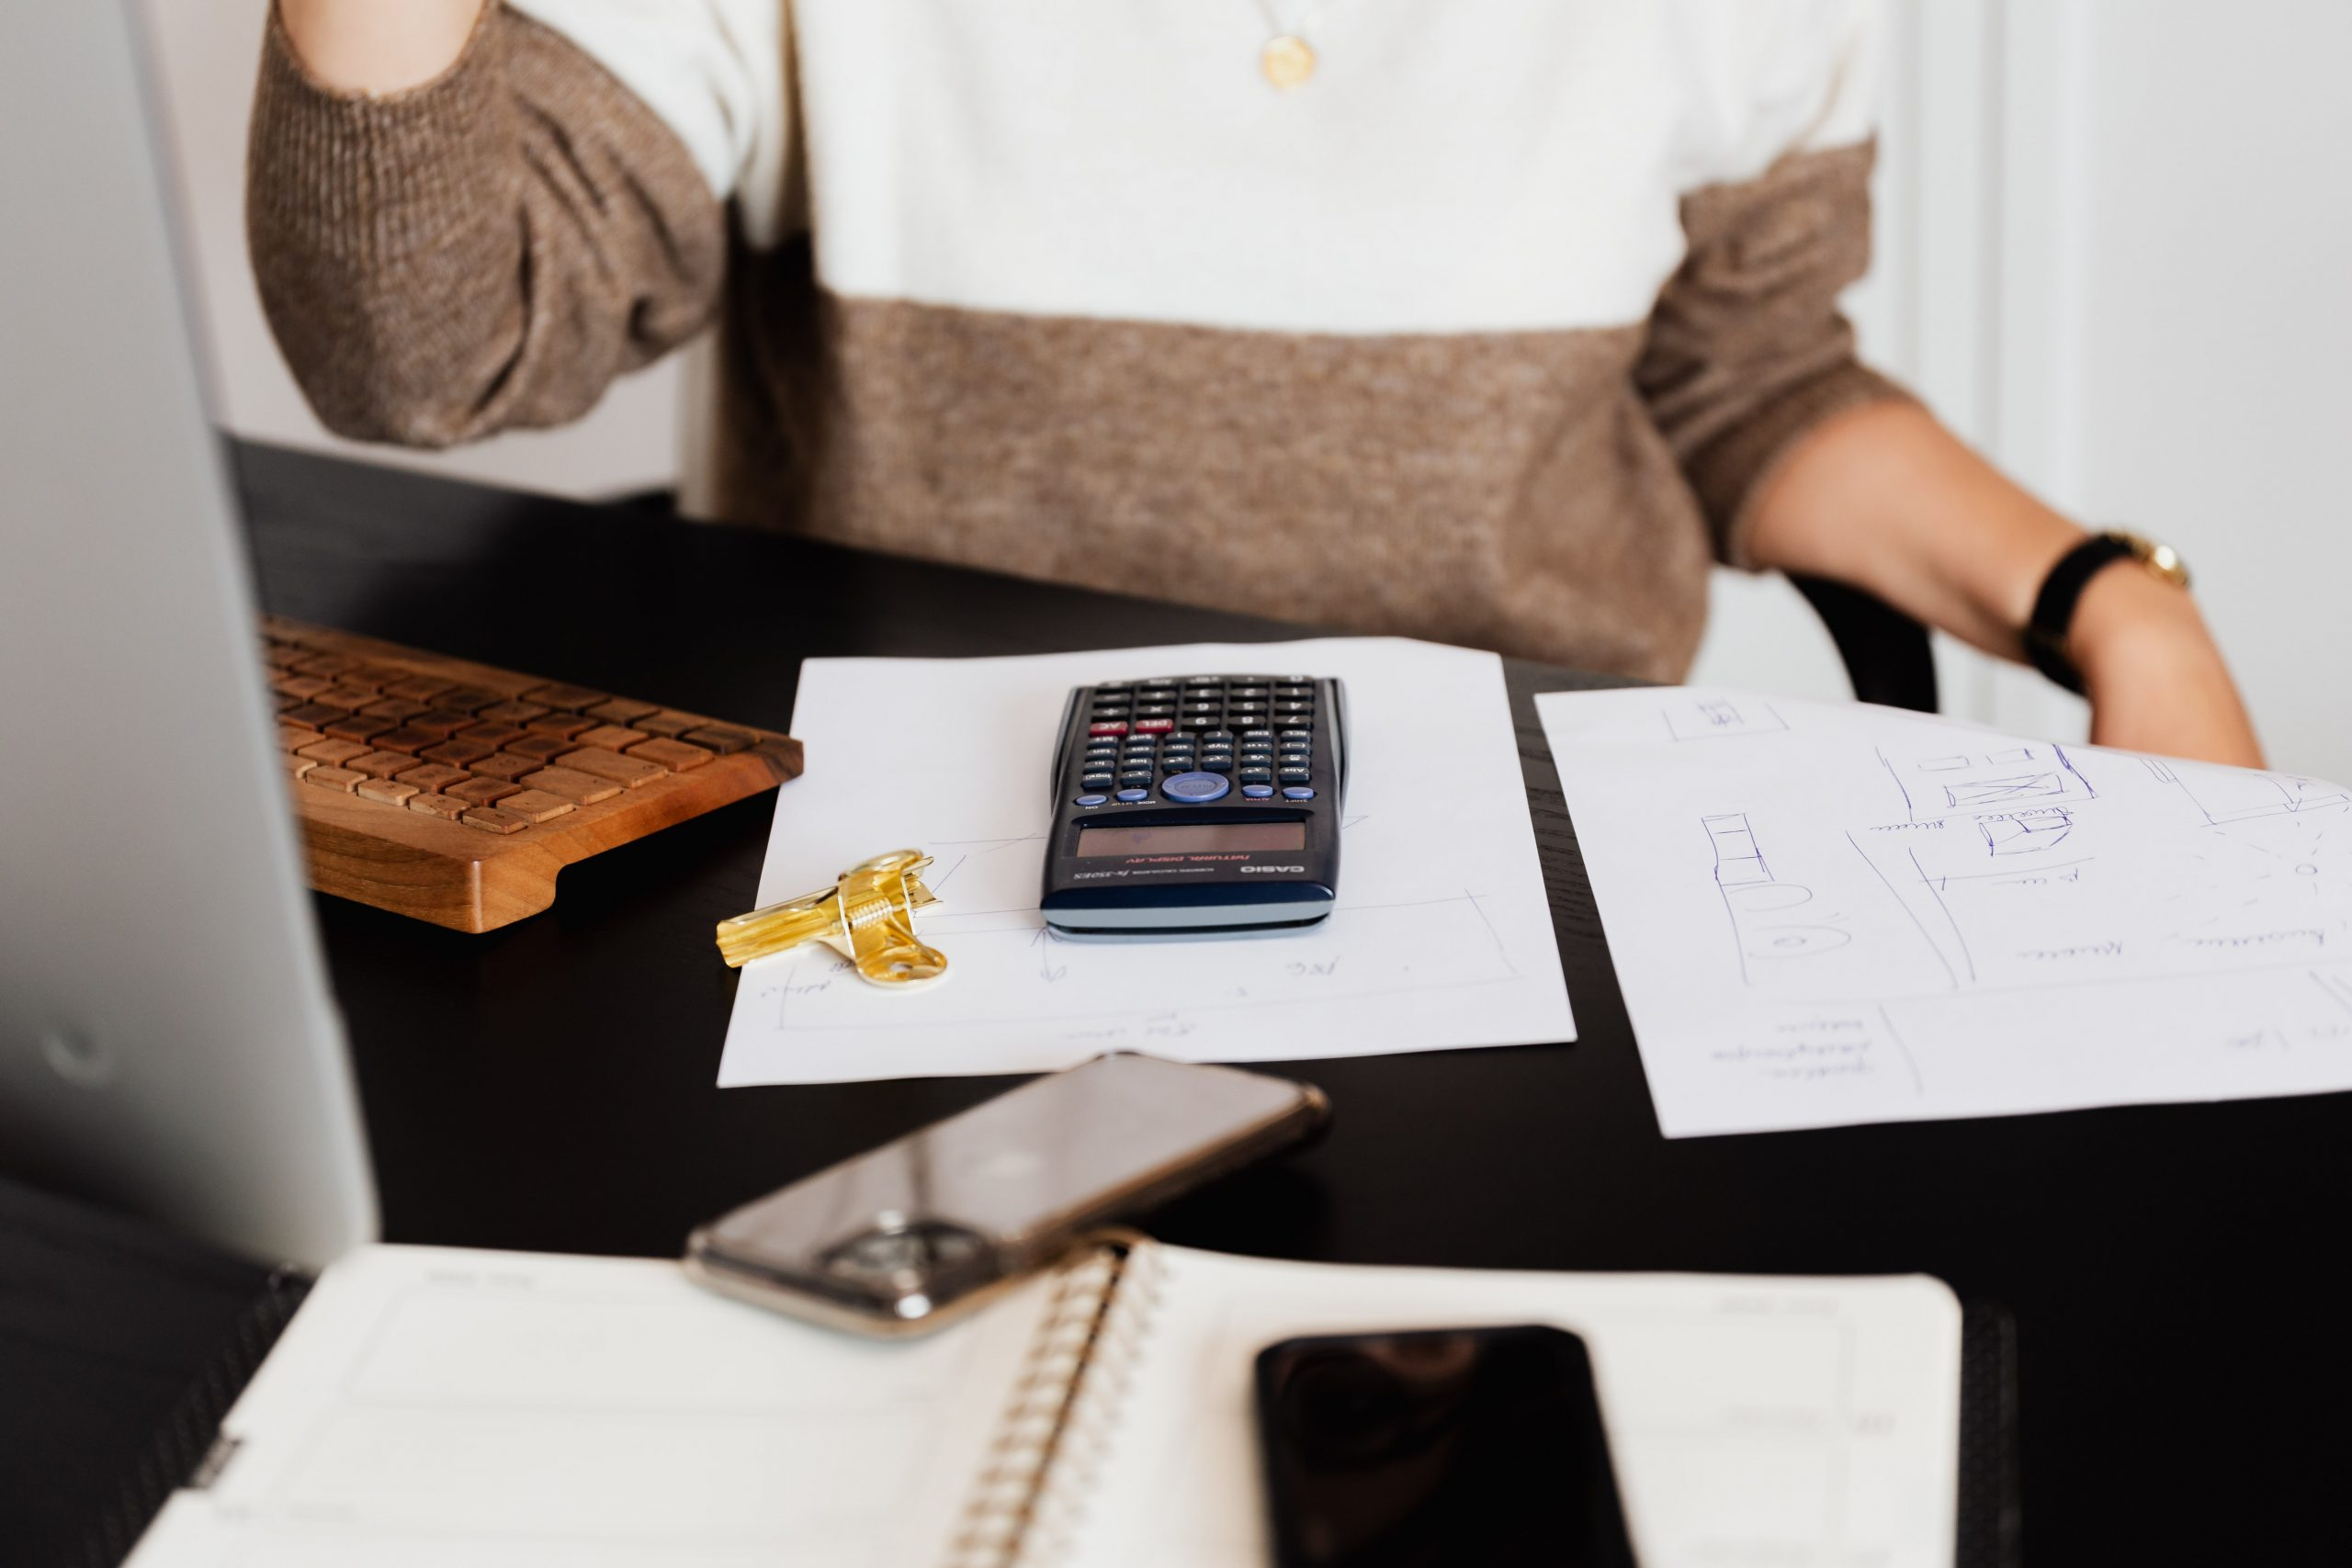 accountant services woman sitting at desk with calculator